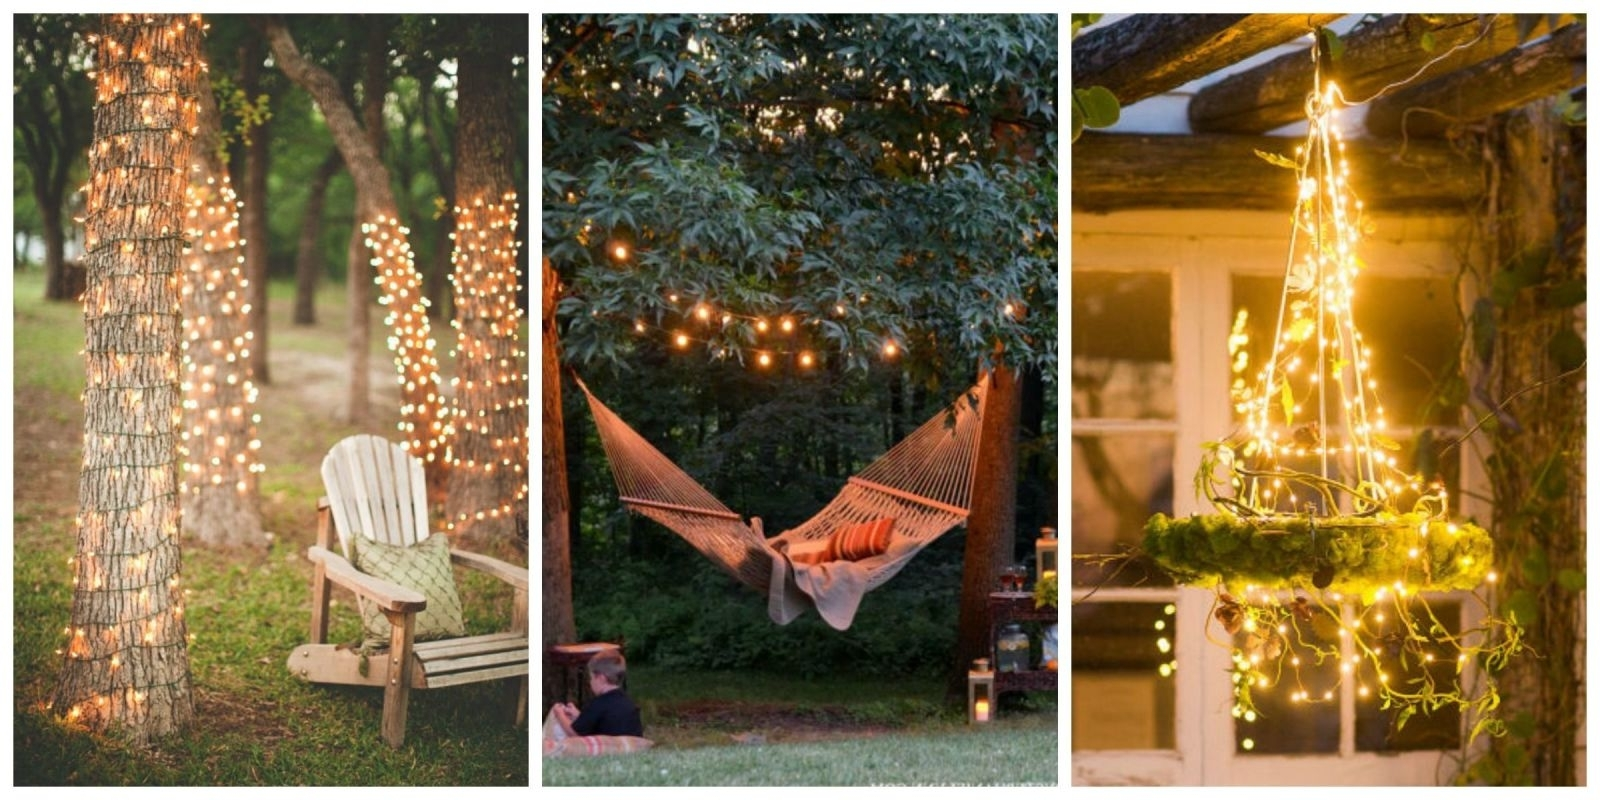 Widely Used Garden And Outdoor String Lights Intended For Backyard String Lights Pics Patio Led Porch Ideas Garden Outdoor (View 8 of 20)